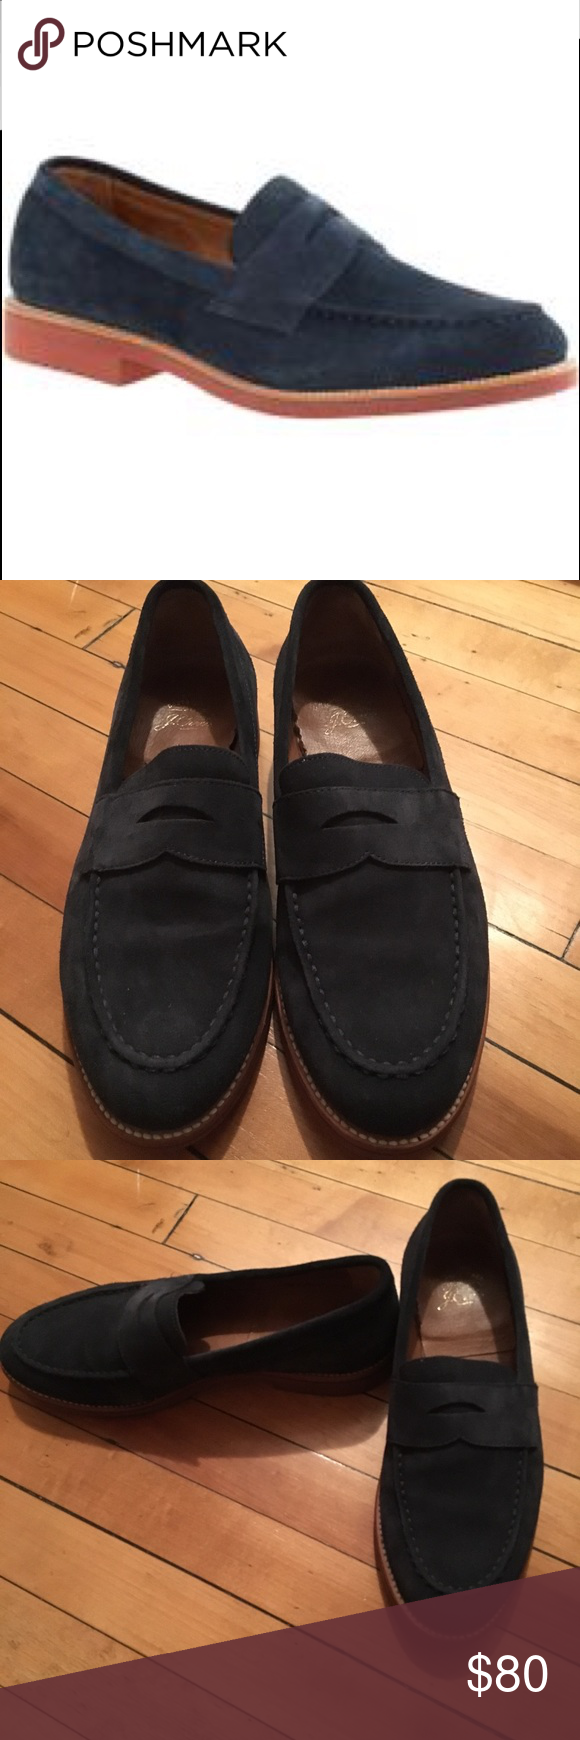 1a69a01f0e7 J Crew Kenton Suede Penny Loafers Slightly used but in good condition  loafers Classic penny loafers